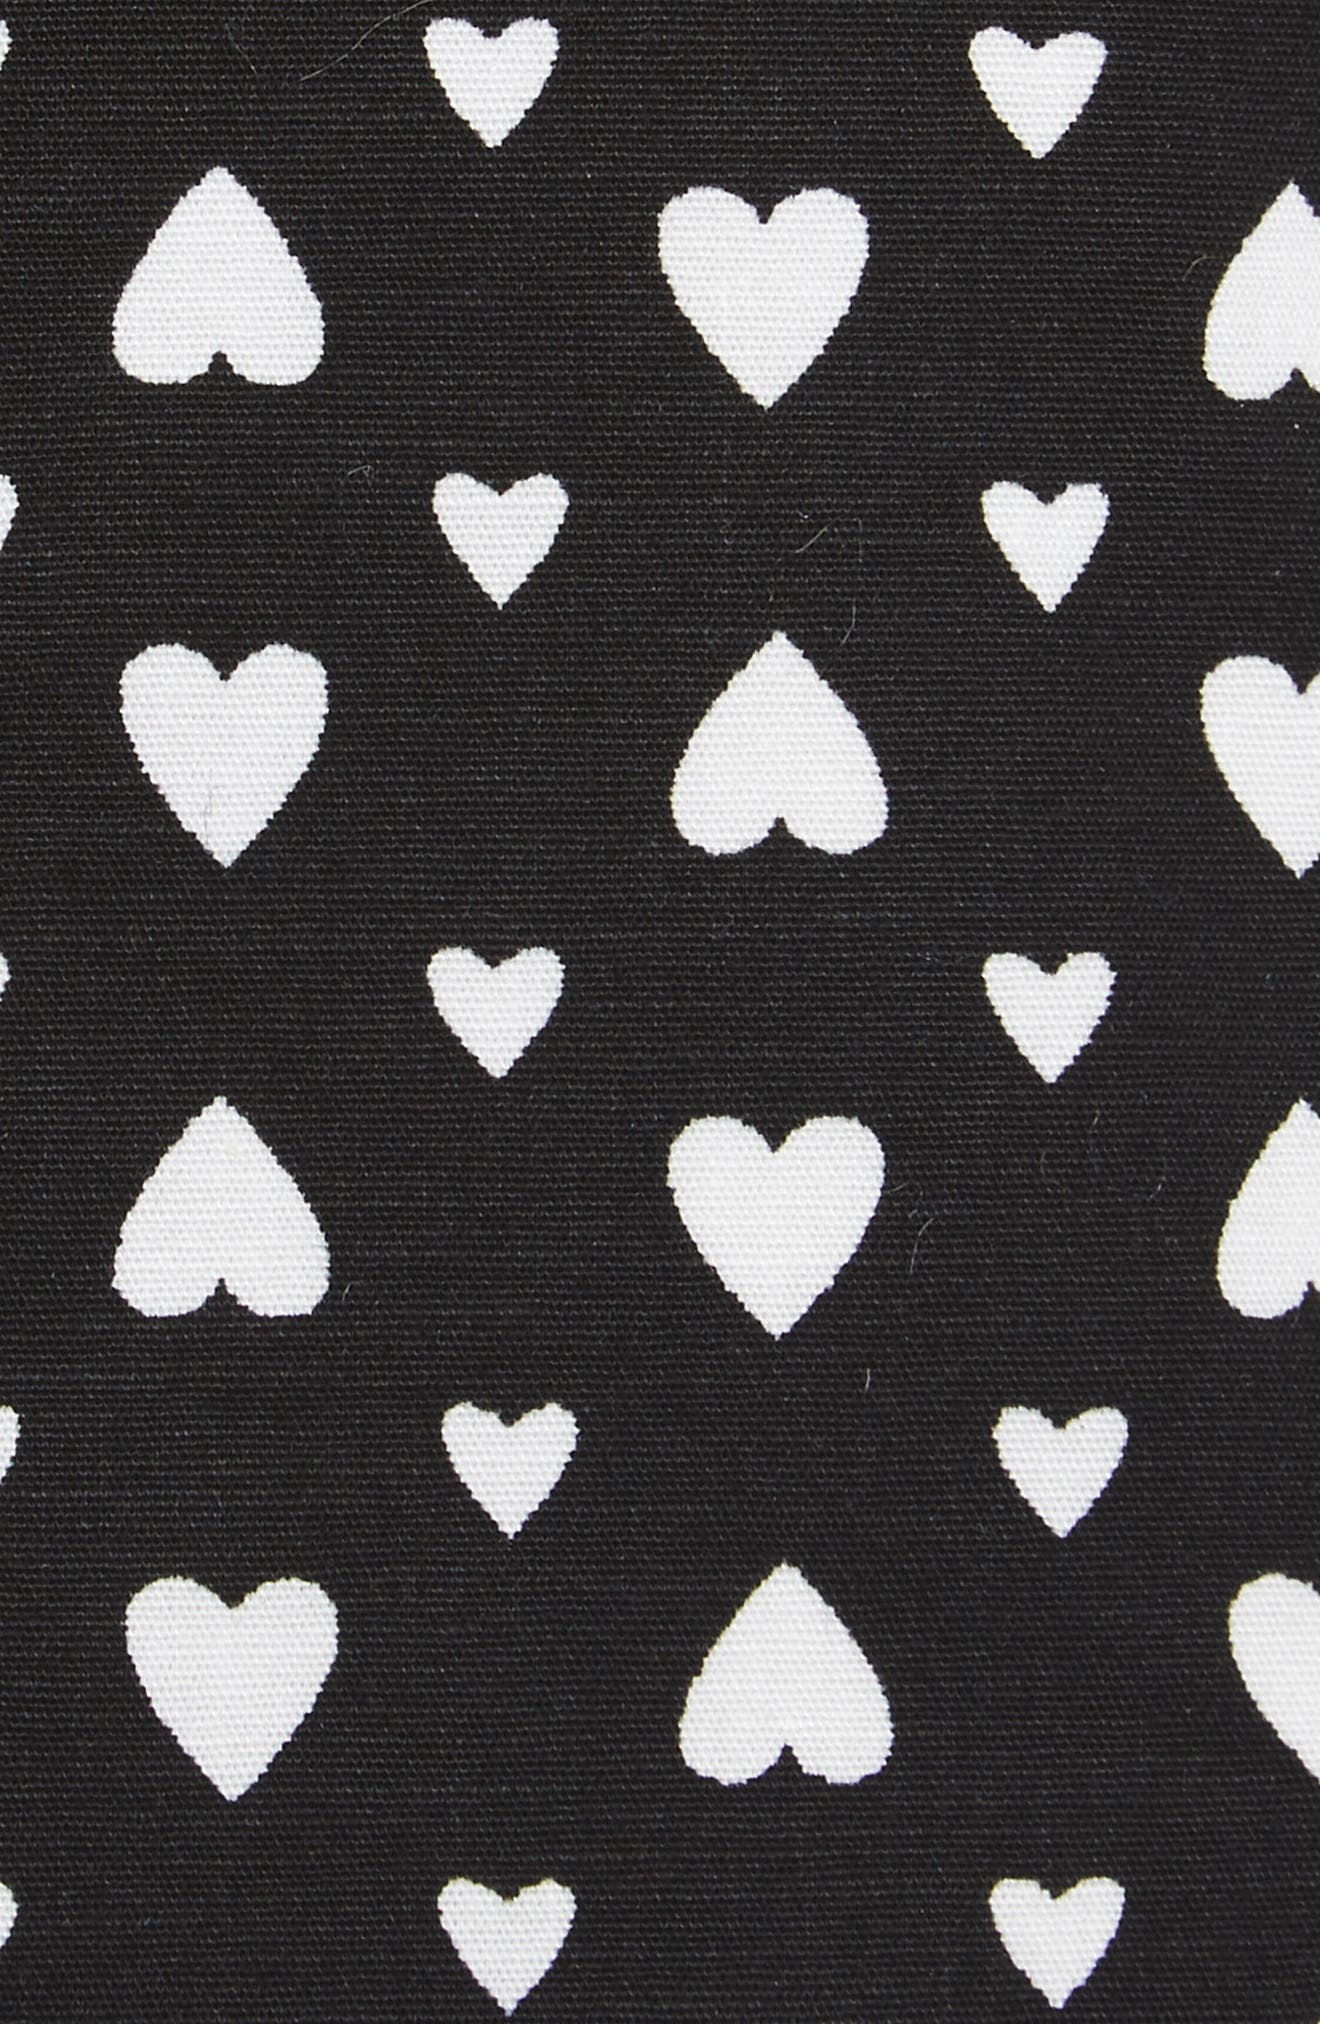 Hearts Print Skinny Tie,                             Alternate thumbnail 2, color,                             001